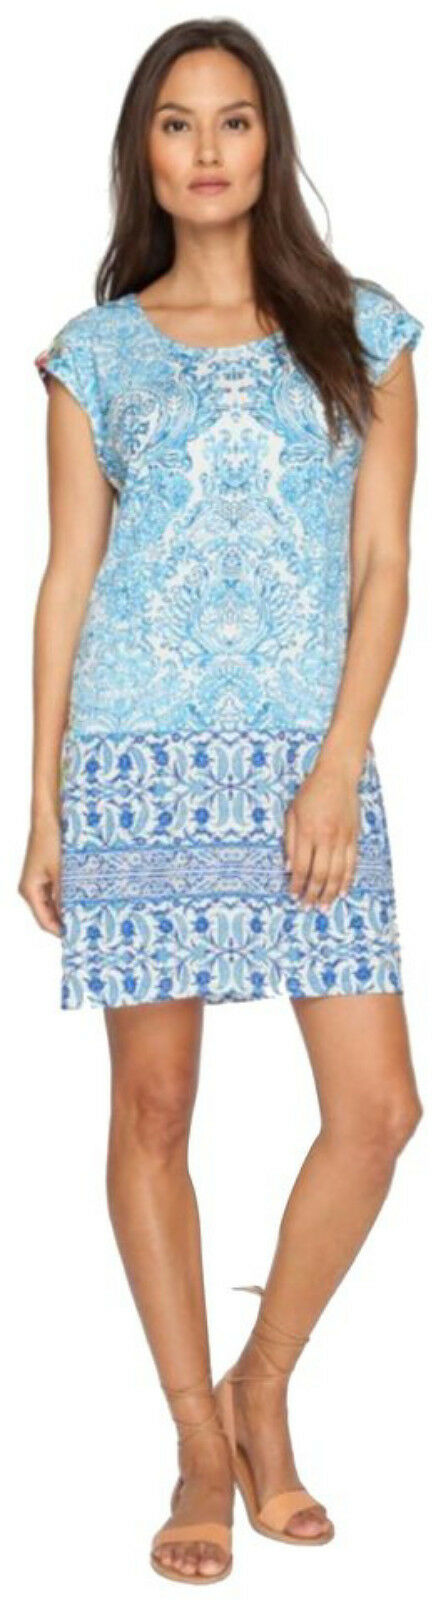 Johnny Was Was Was Print Stretch Dress Small 2 4 Bold Pattern Small Cap Sleeves A Line 315f43